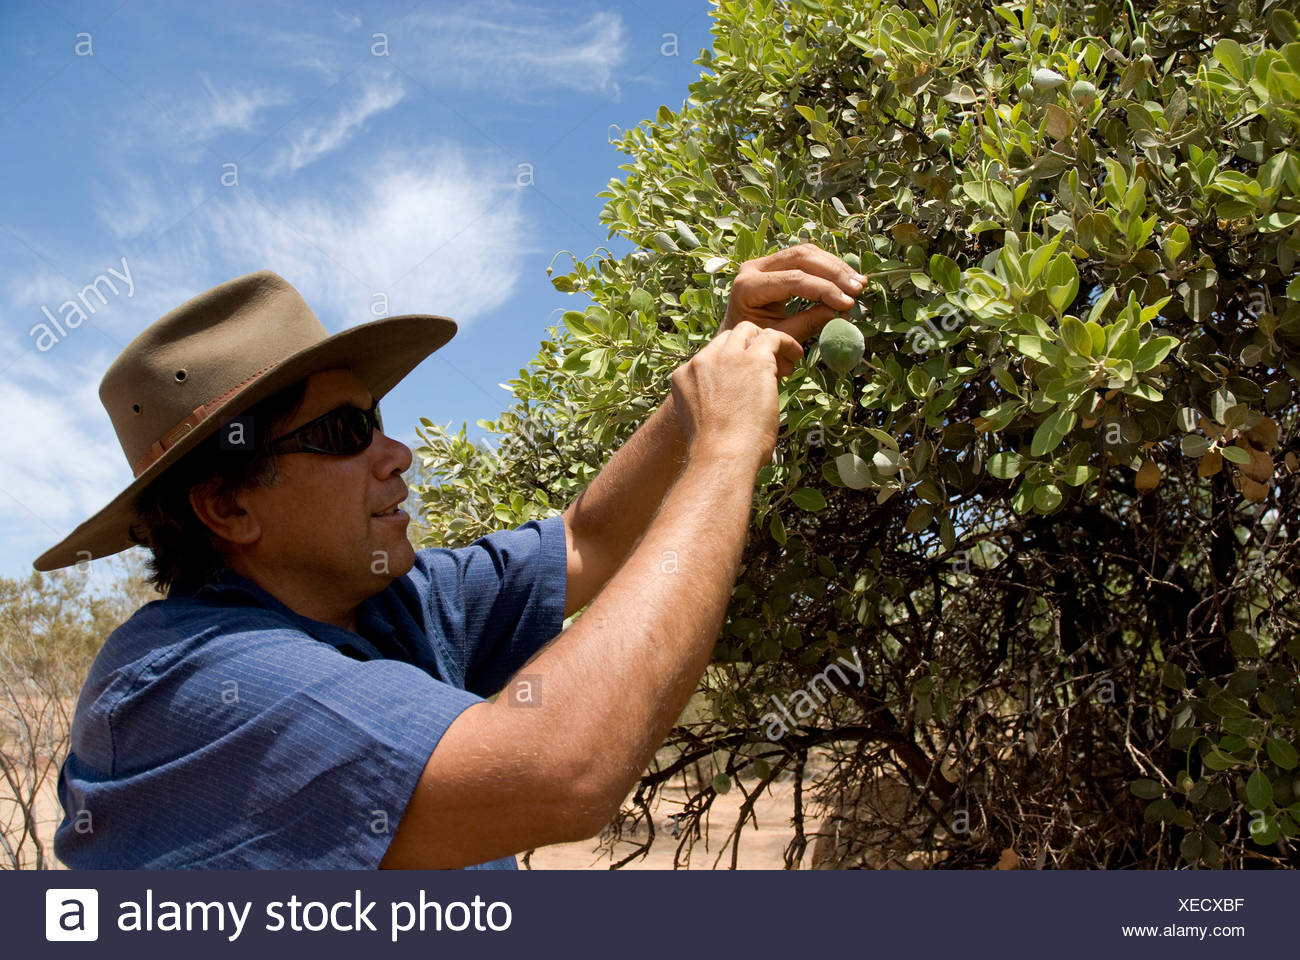 Bush walk with half aboriginal Bob Tailer, Simpsons Gap, West Mac Donell National Park, Alice Springs, Northern Territory, Aust - Stock Image